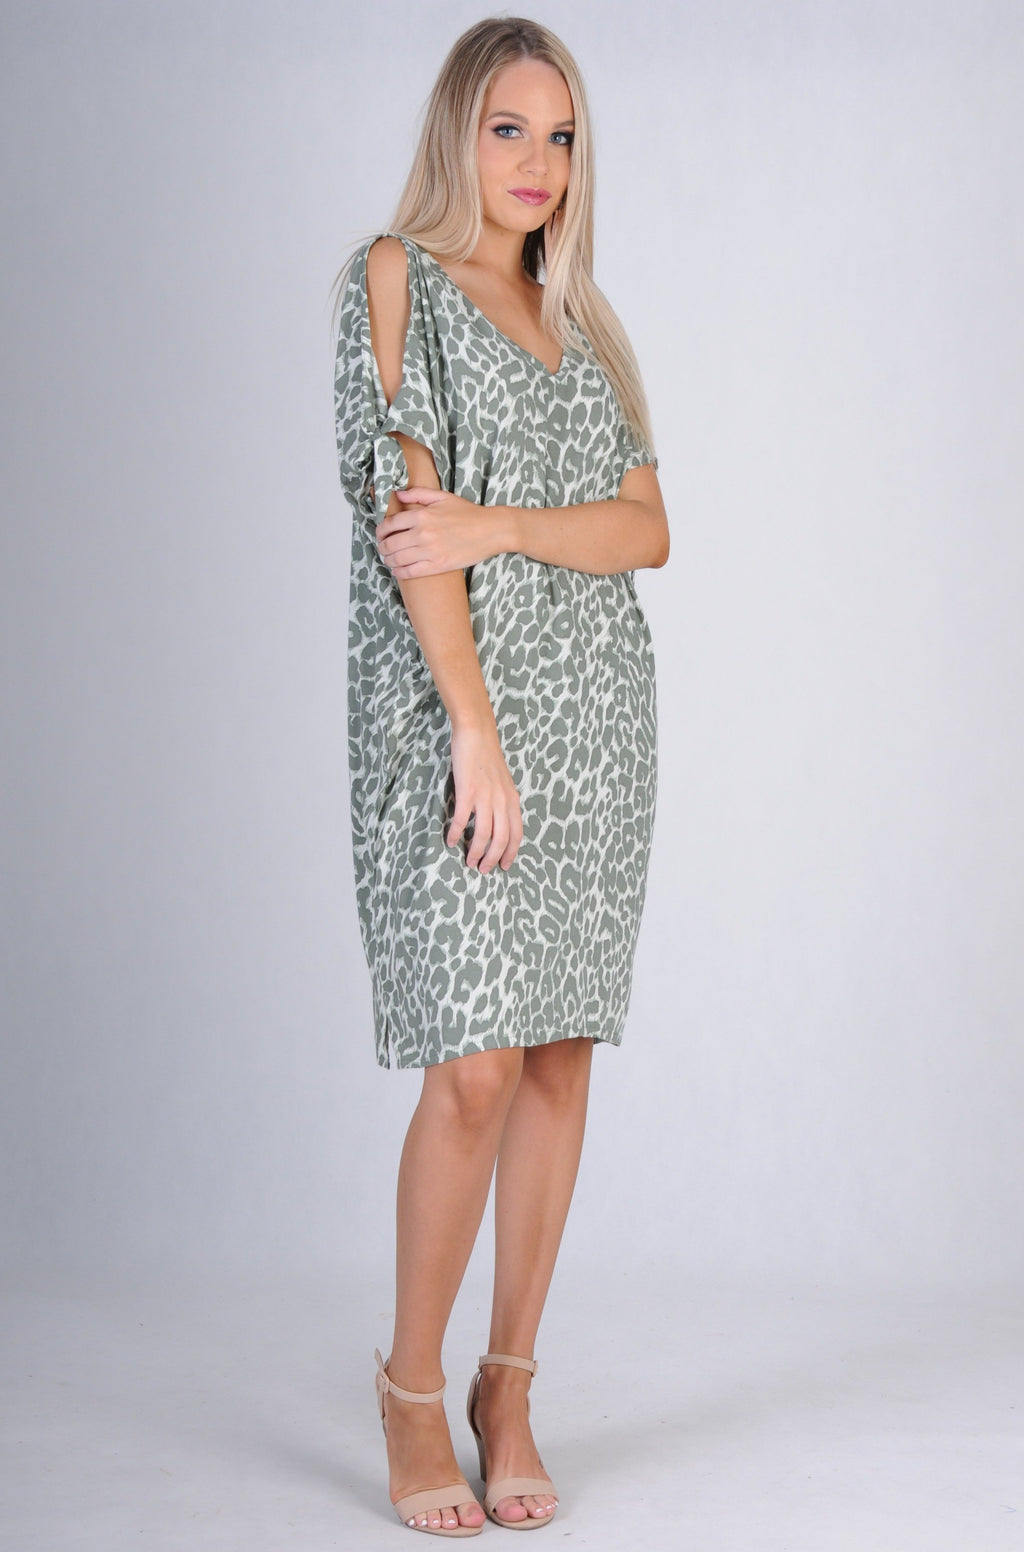 VBLD068 - TIE SHOULDER DRESS - JUNGLE LEOPARD KHAKI